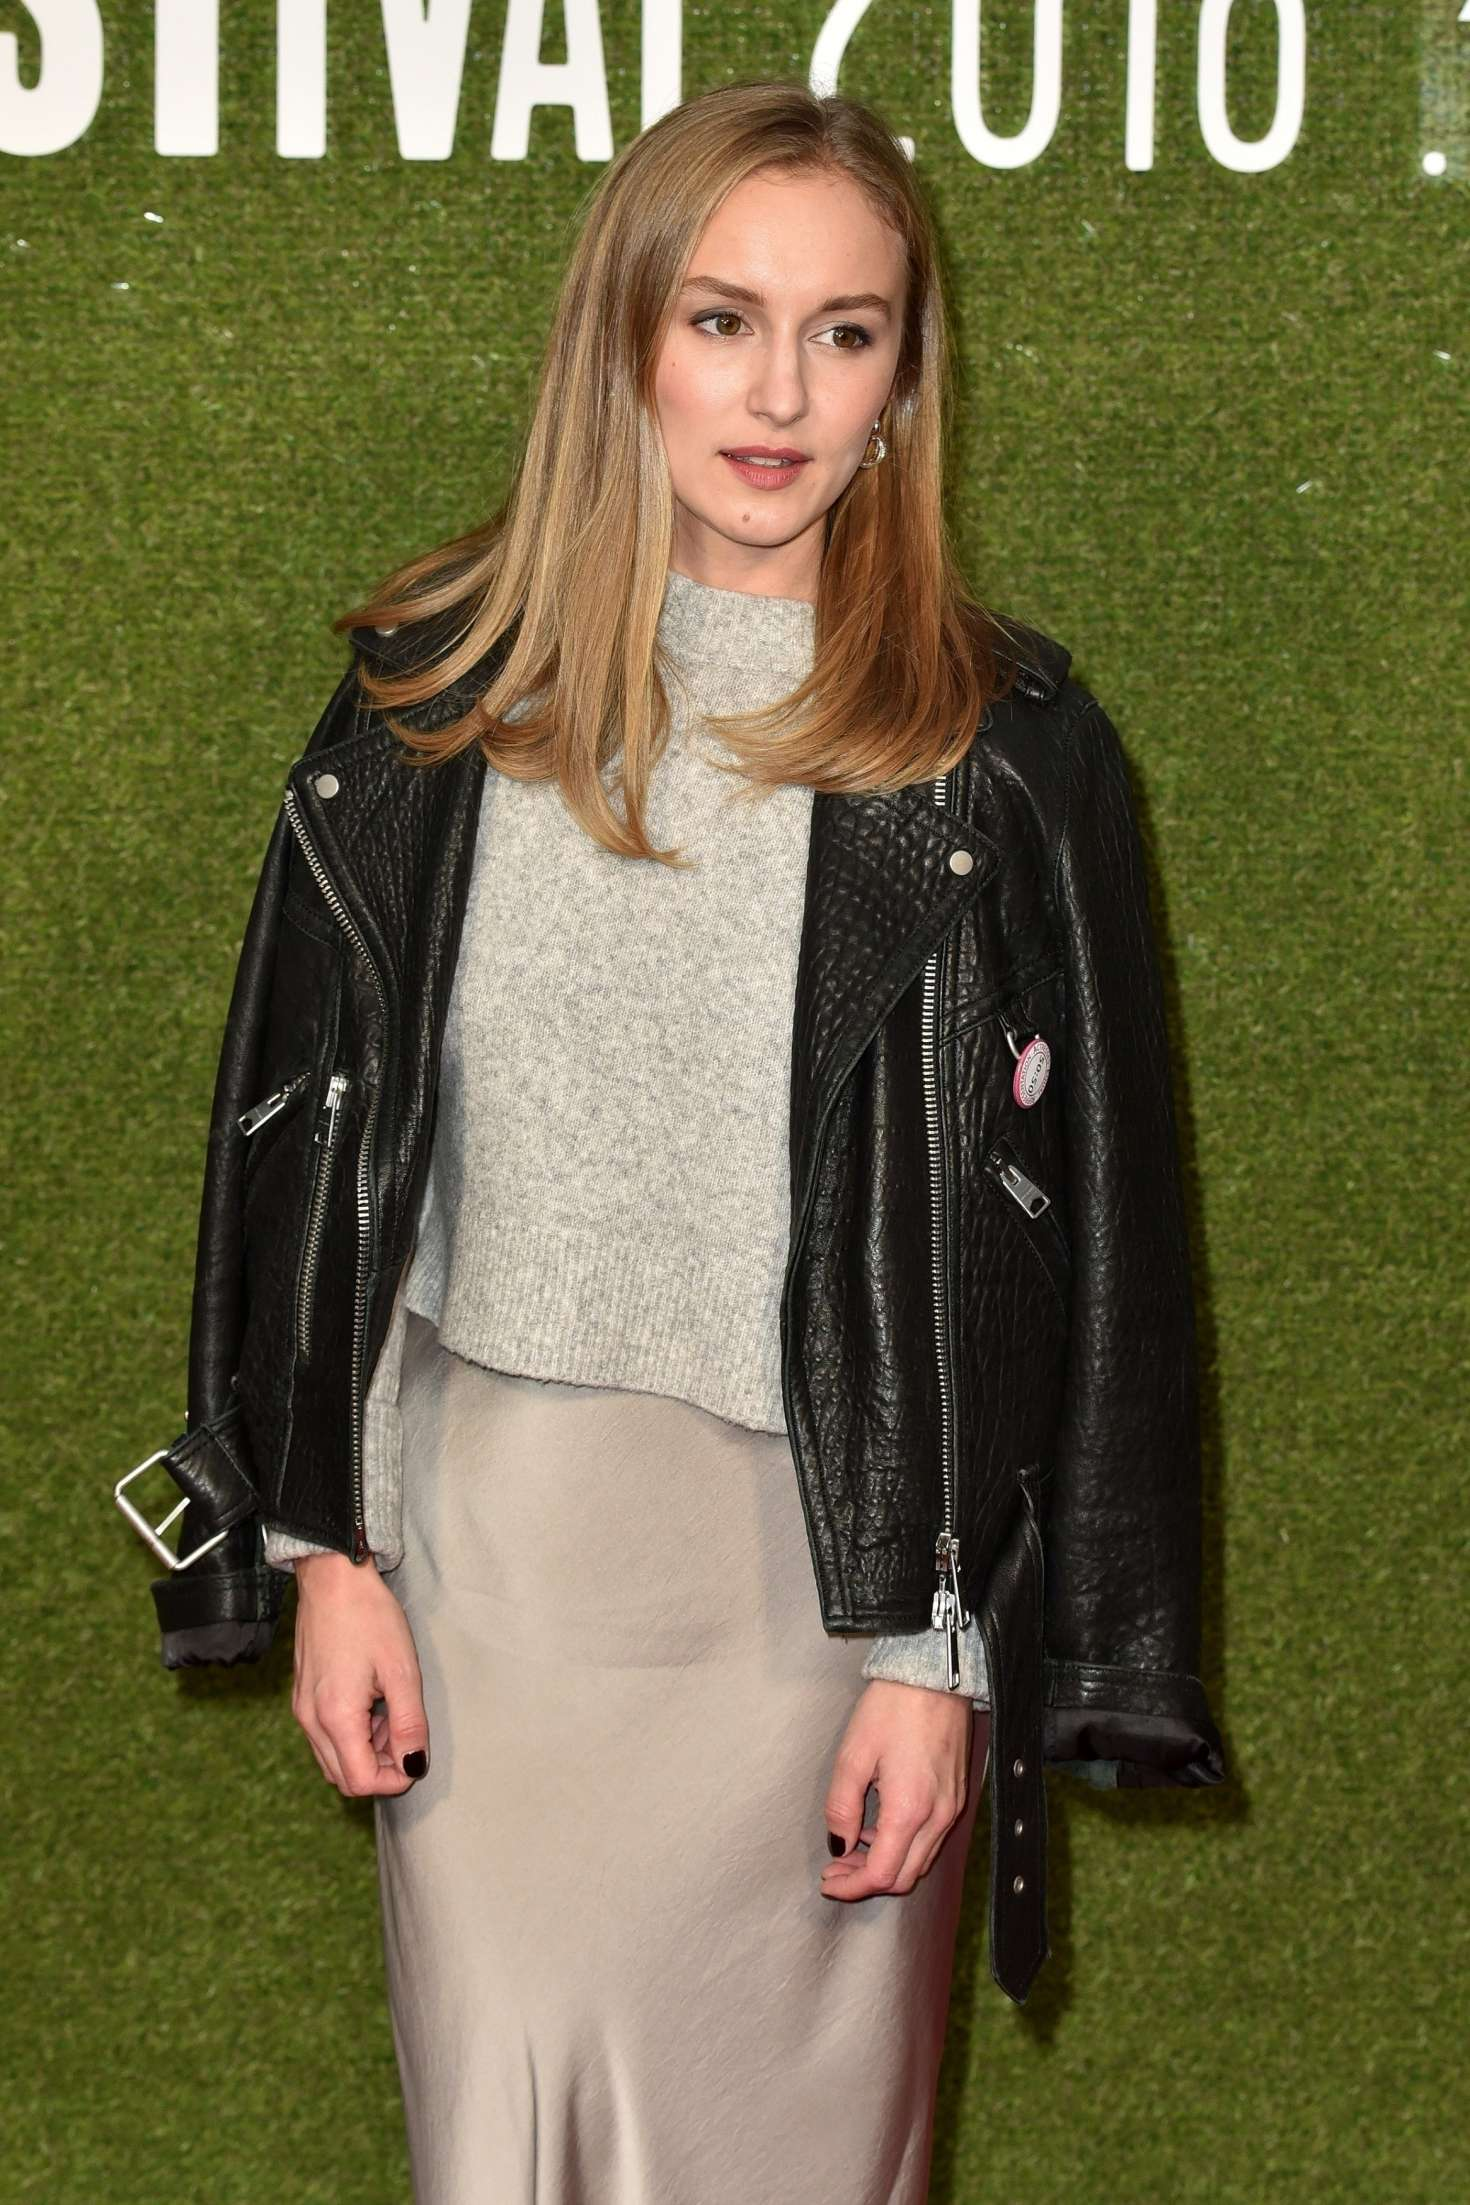 Bethany Muir 2018 : Bethany Muir: The Little Drummer Girl Premiere -05